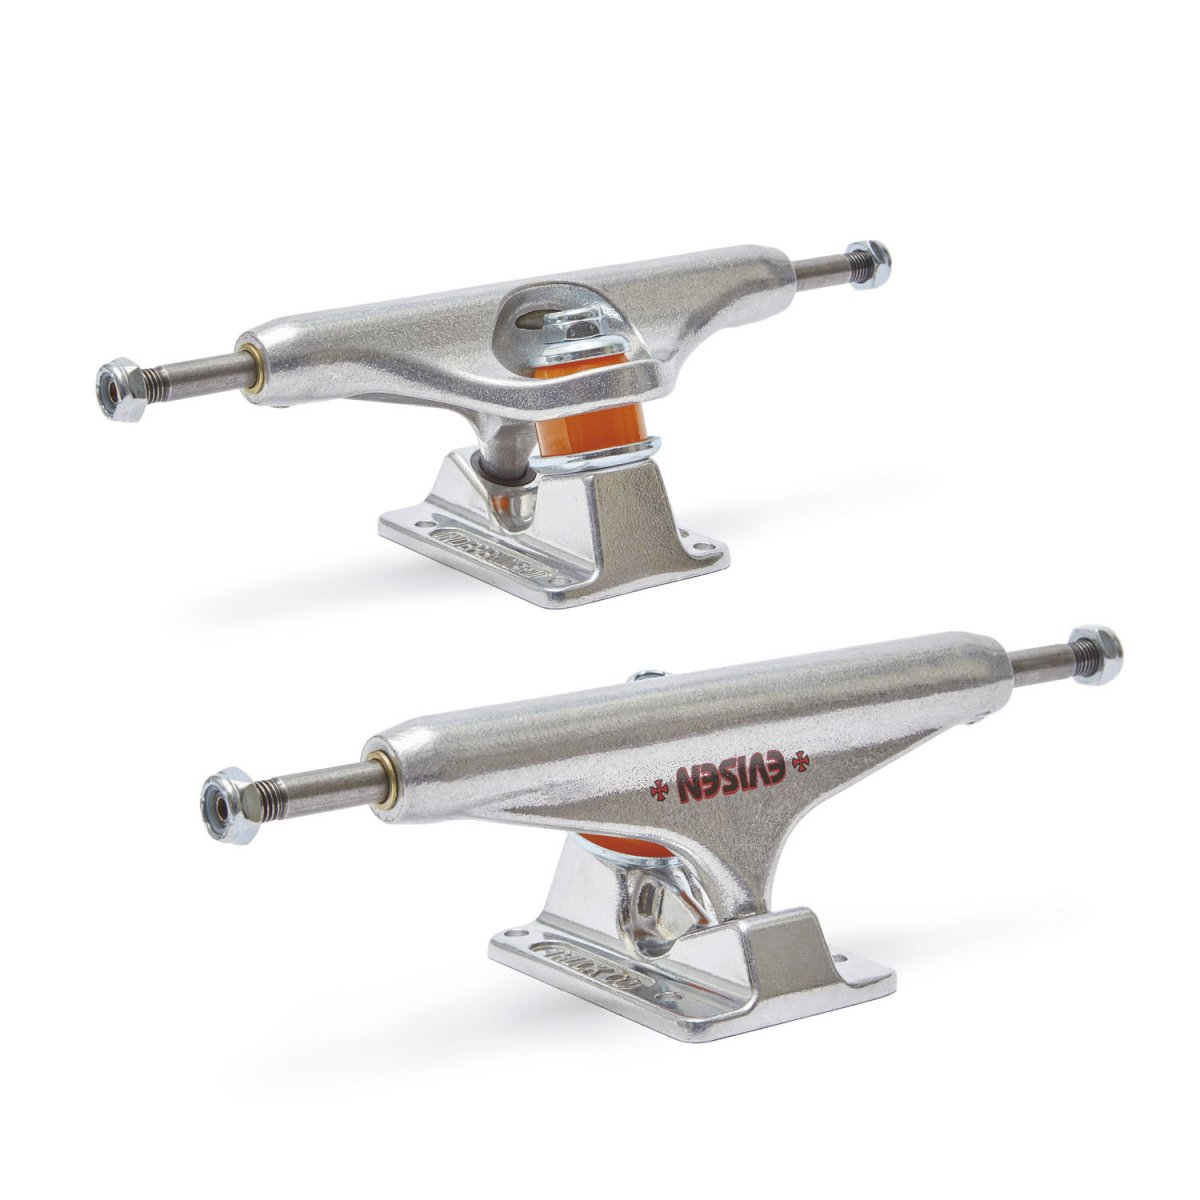 【EVISEN x INDEPENDENT】TRUCK STAGE 11 STANDARD(HI) FORGED HOLLOW                             </a>             <span class=